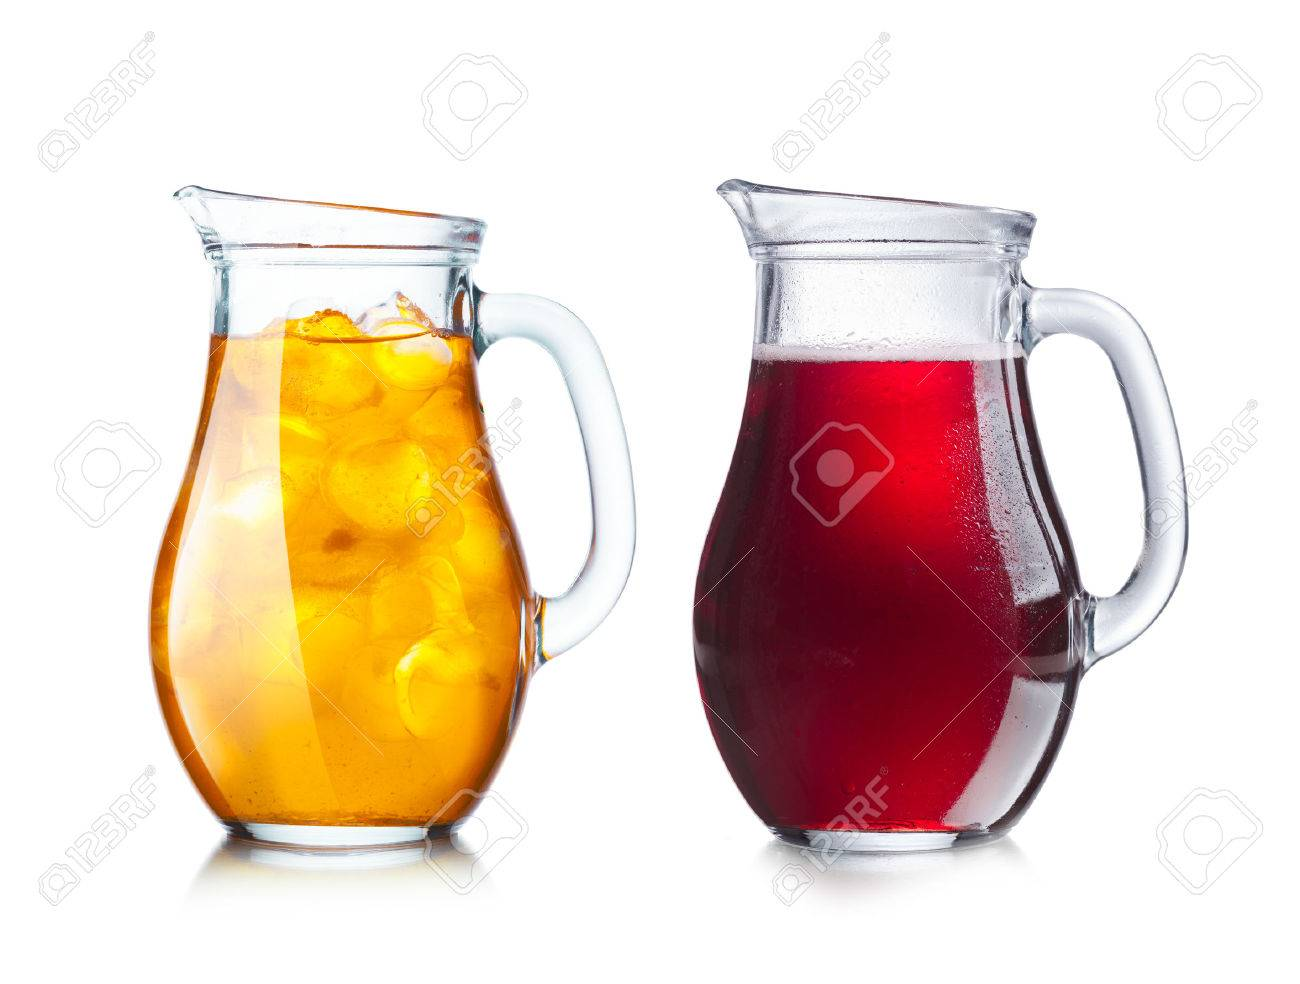 Pitchers Jugs Two Pitchers Jugs With Transparent And Opaque Liquids Of Dark